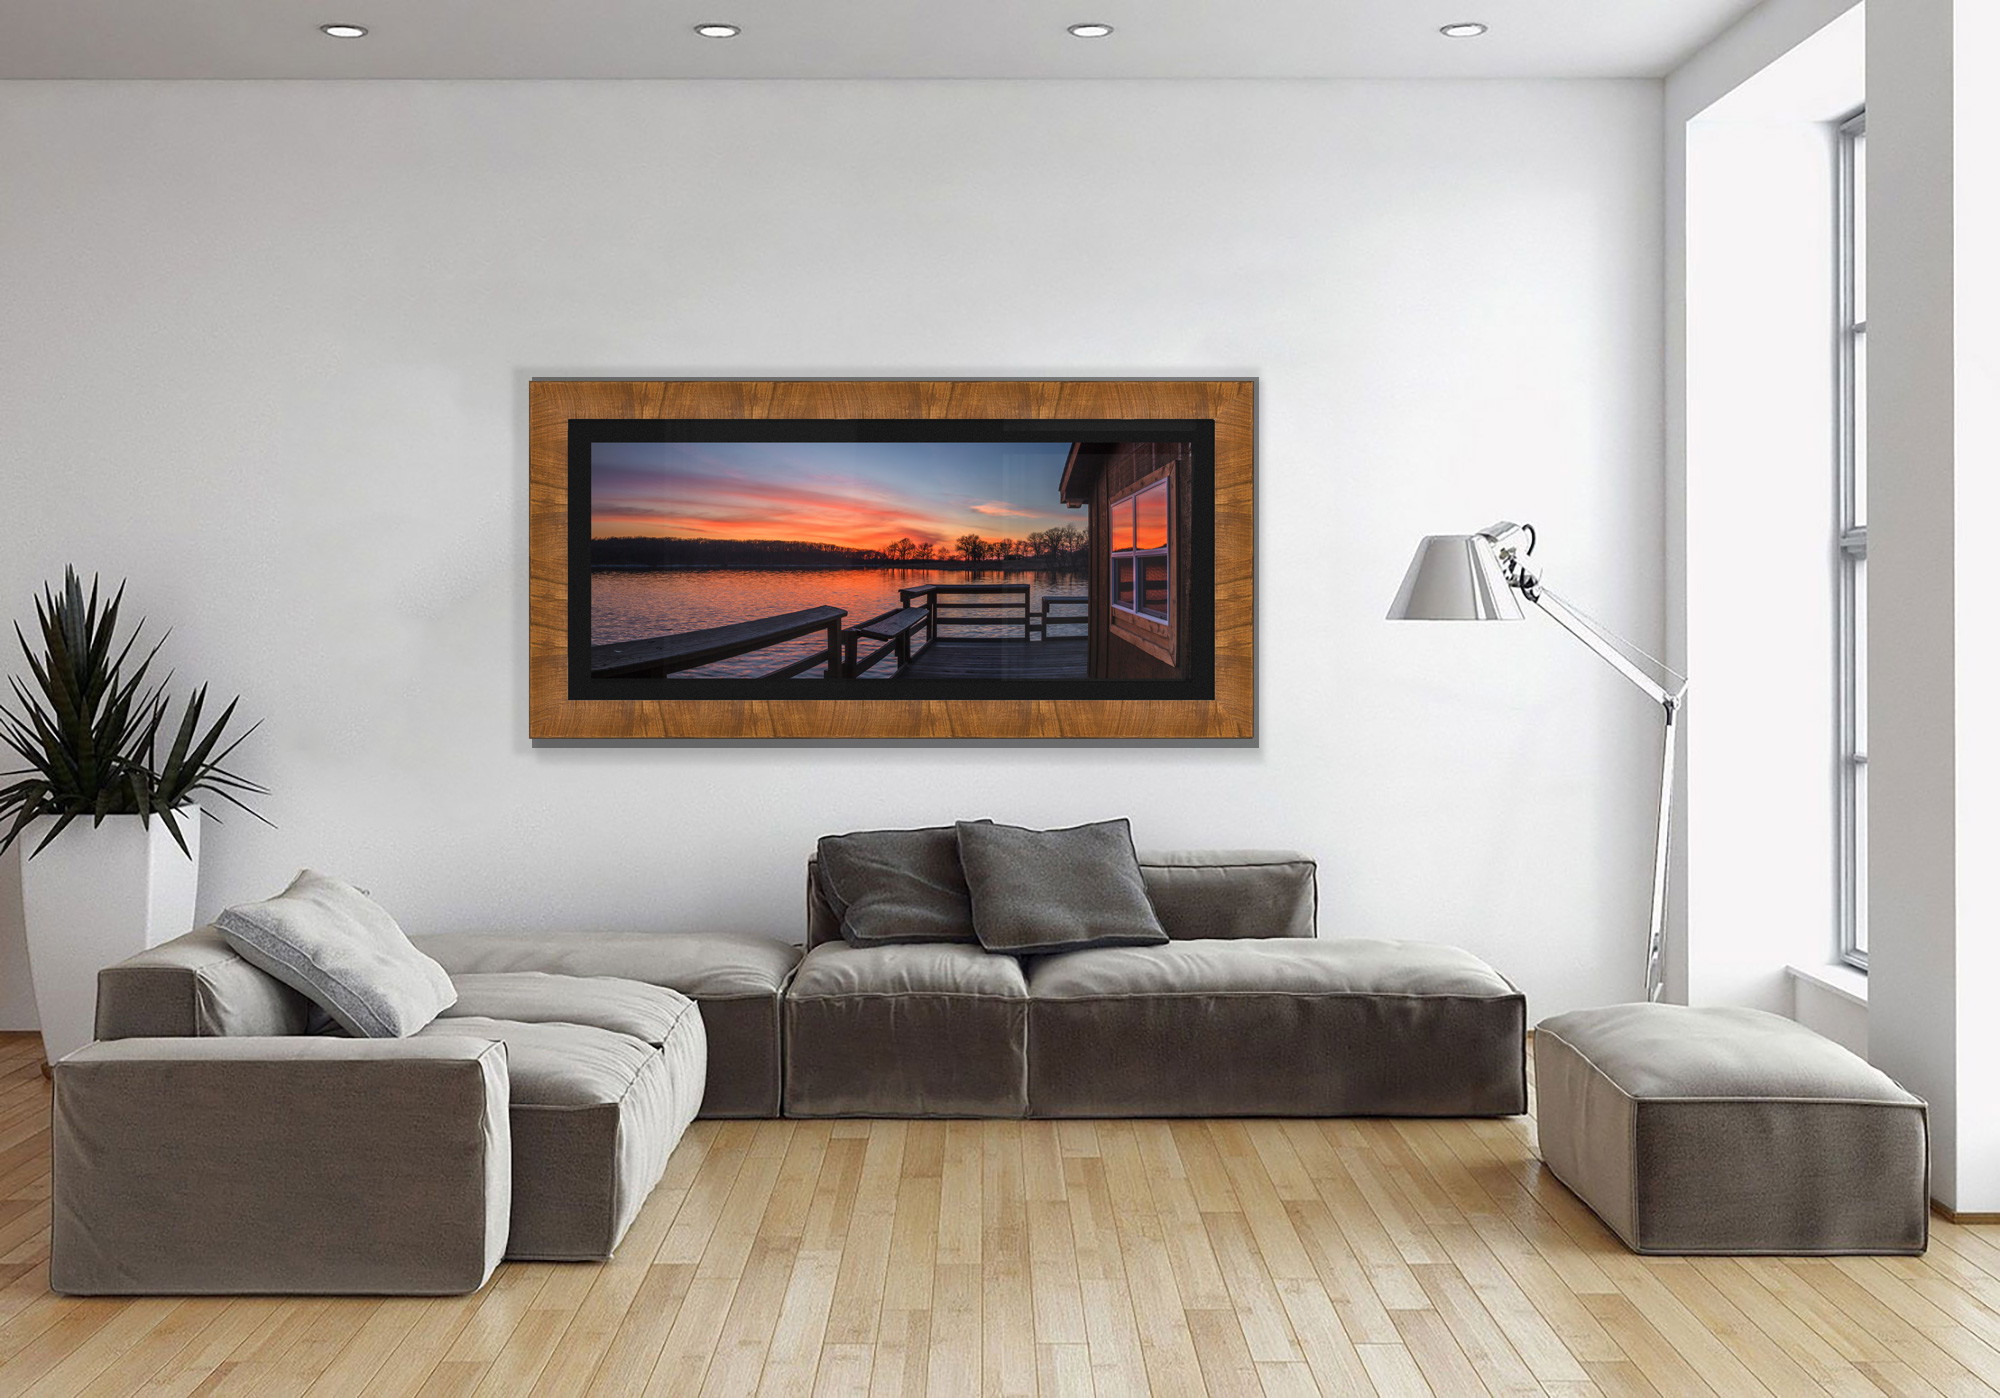 Lake Ahquabi hanging on the wall in a living room